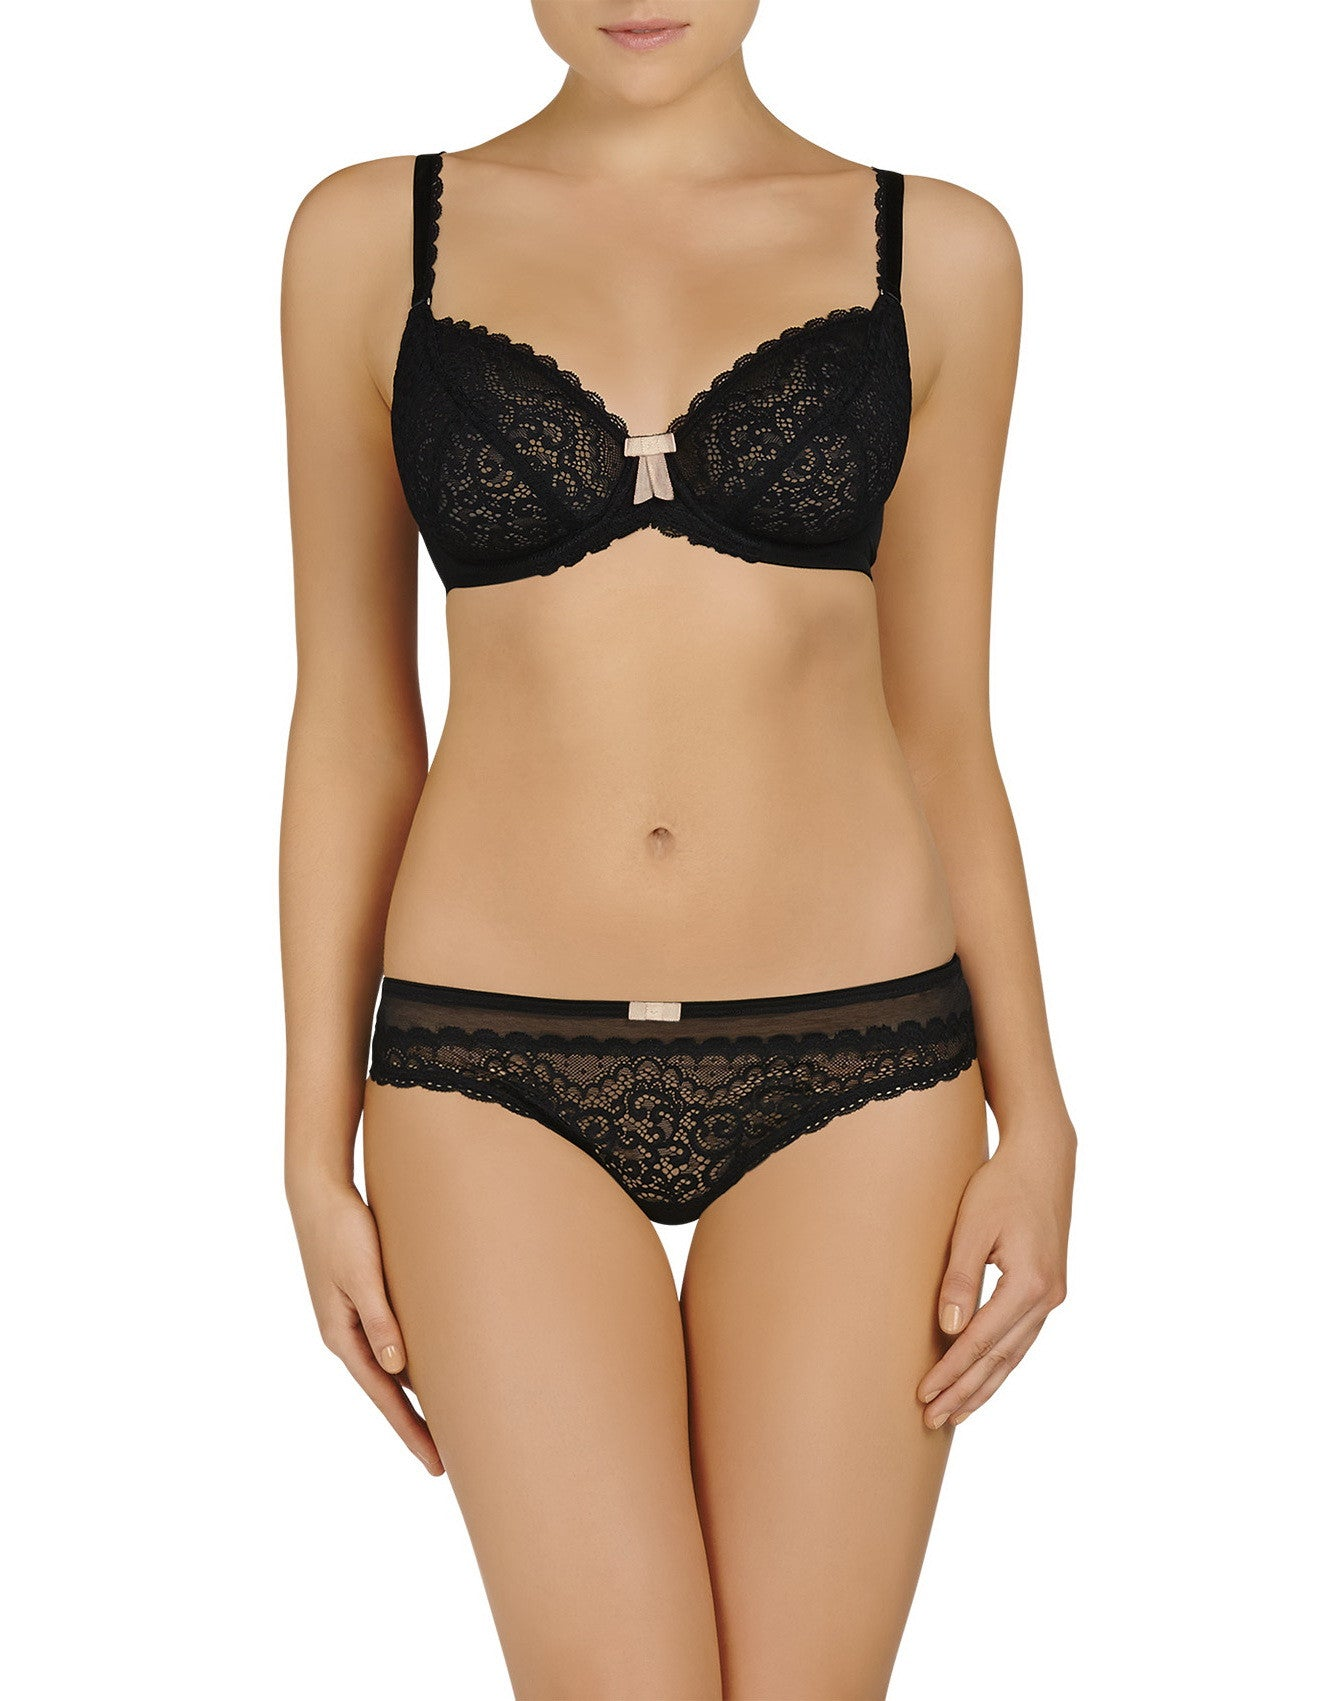 Evollove Ece Queen Underwire Bra - Knickers & Pearls Boutique - 4